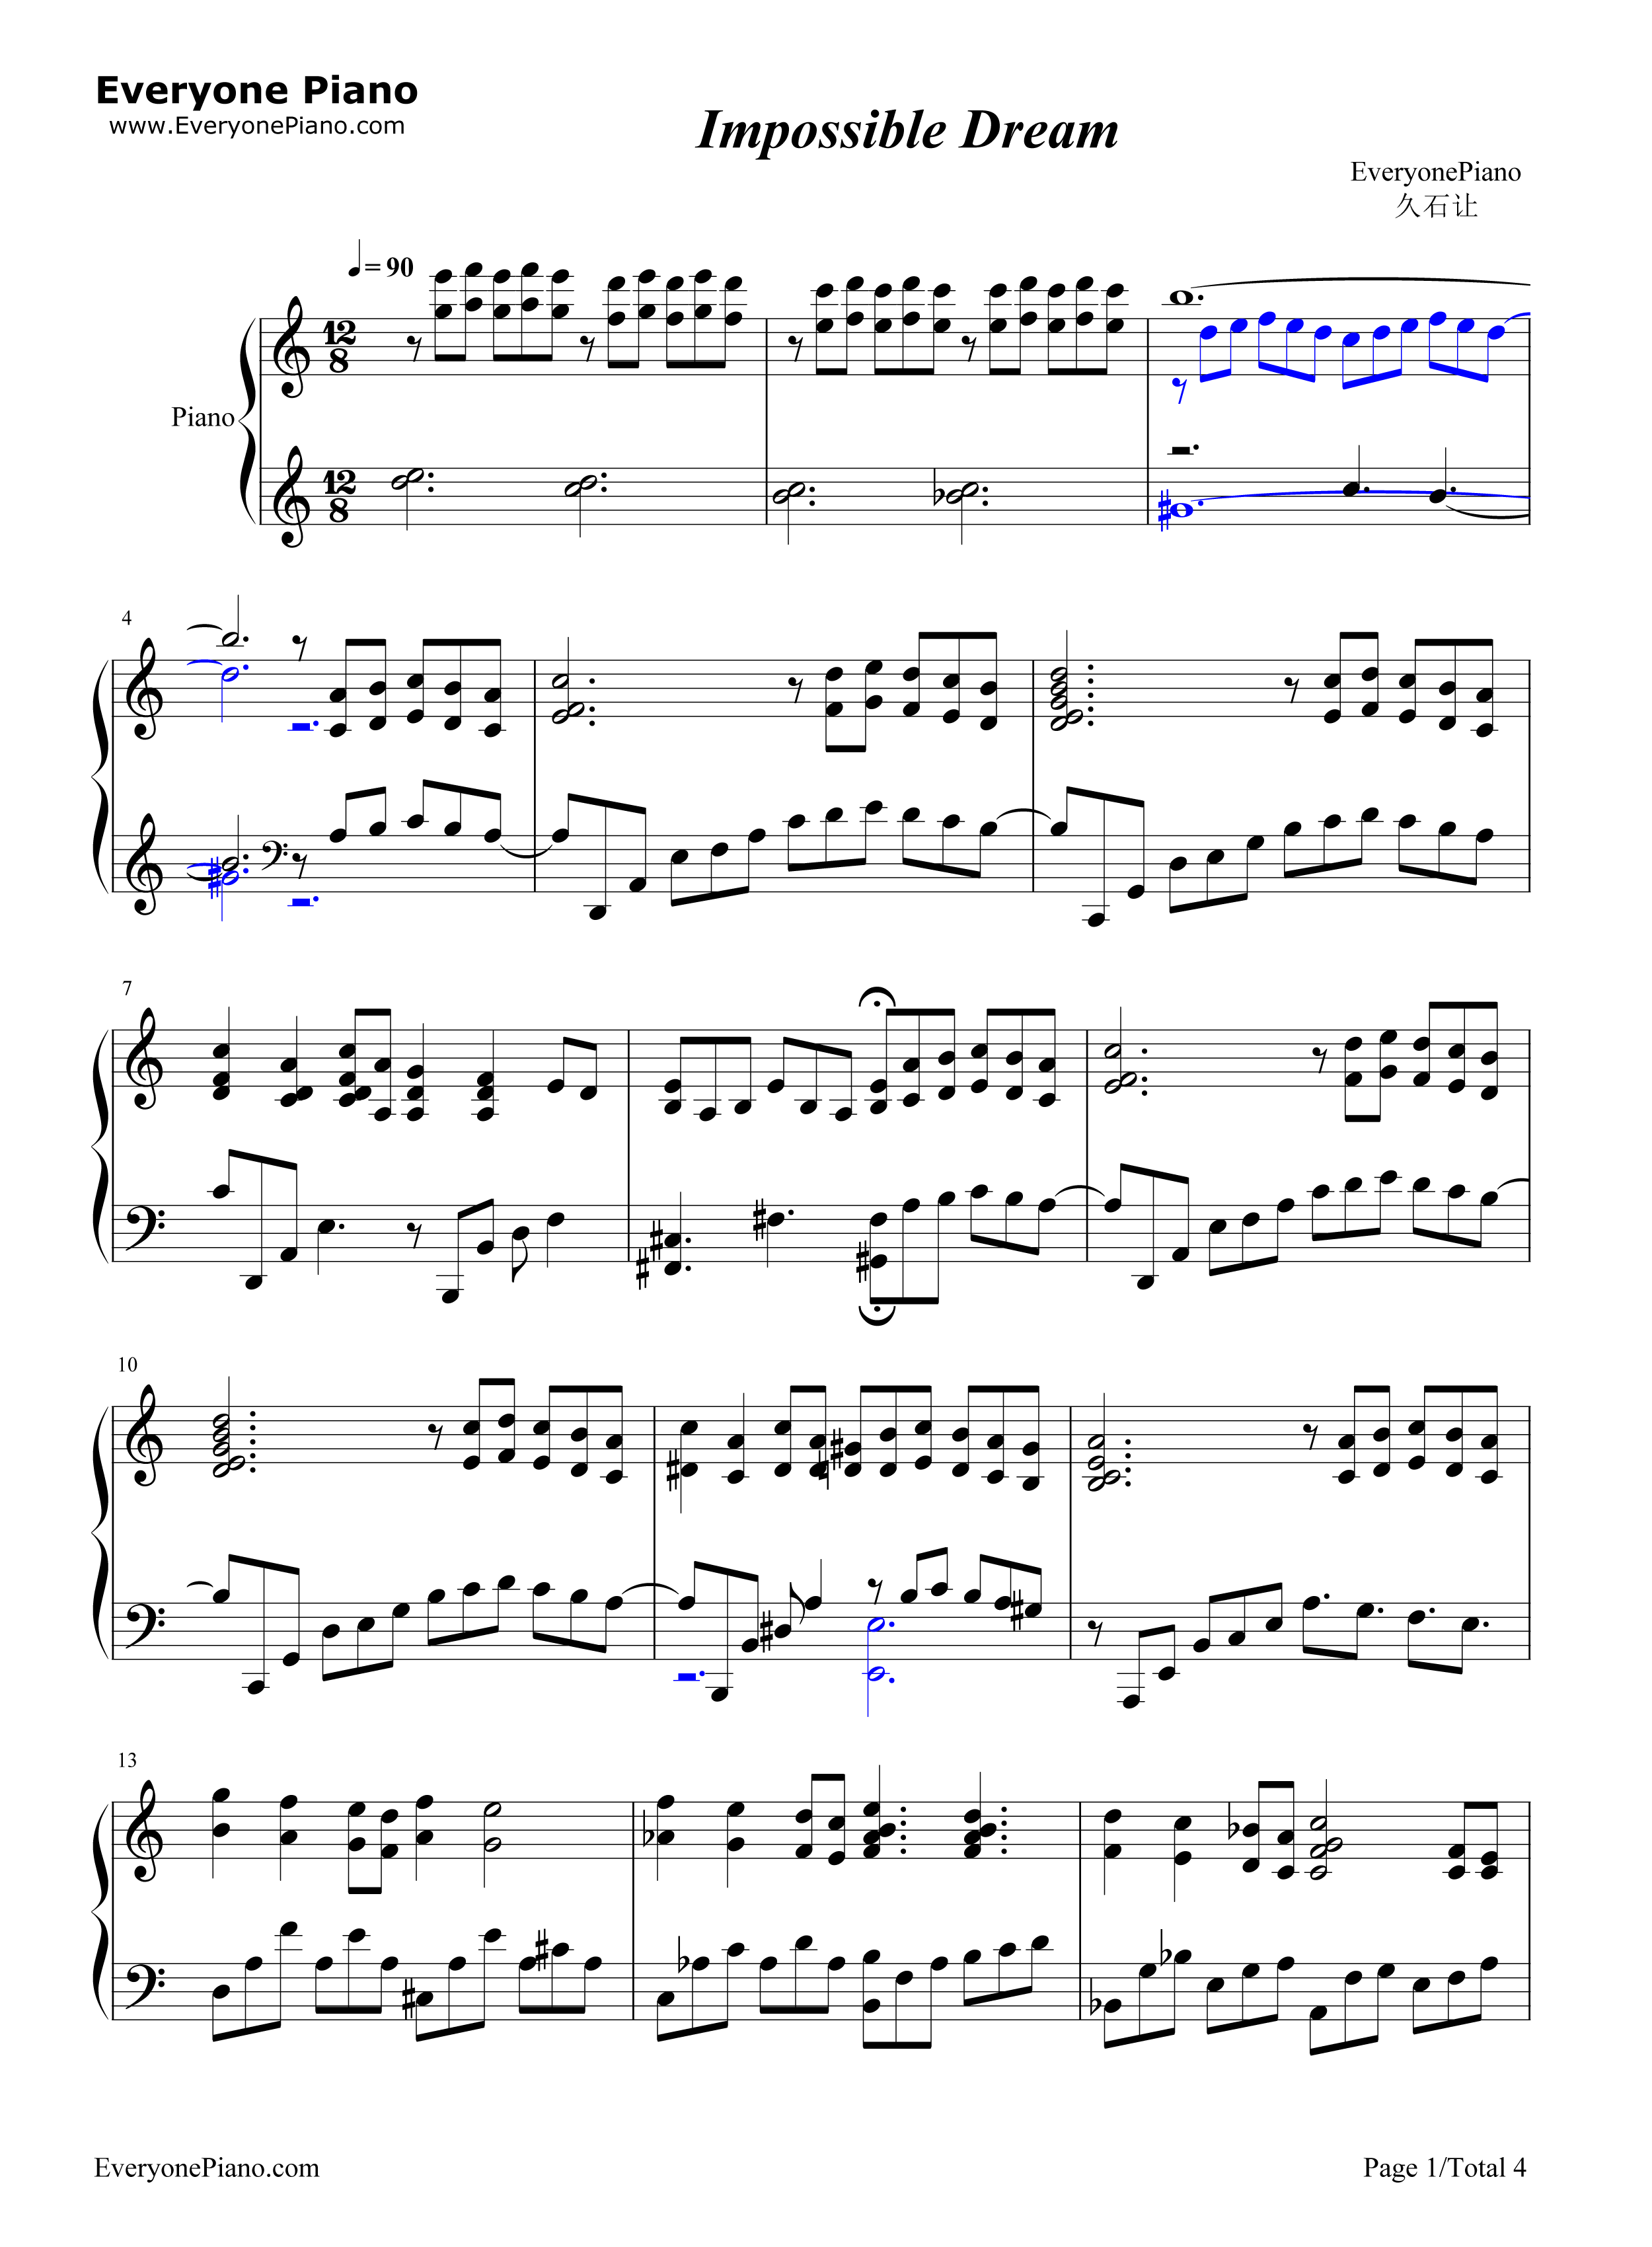 Impossible dream joe hisaishi stave preview 1 free piano sheet listen now print sheet impossible dream joe hisaishi stave preview 1 hexwebz Images